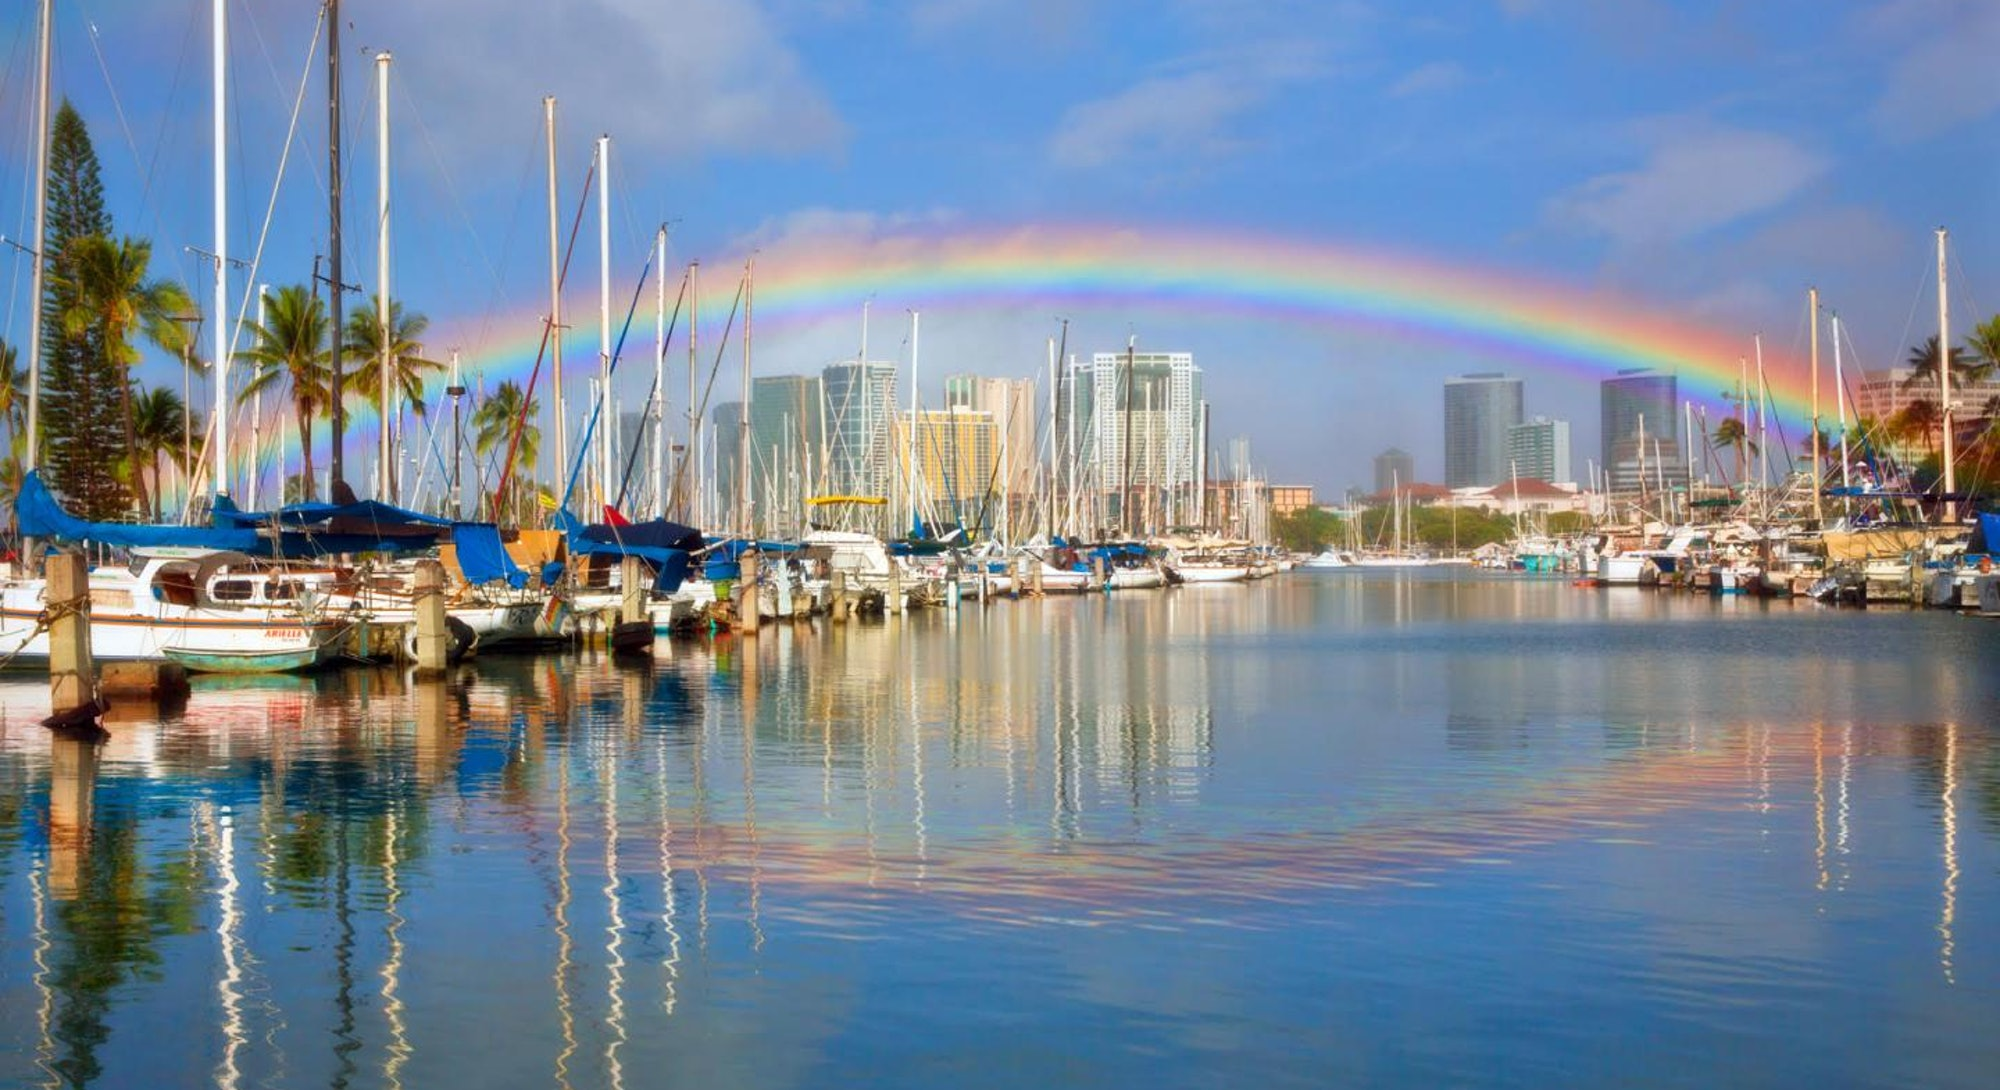 Rainbow over Honolulu Harbor with what appears to be its reflection. However, the reflected bow is not what it appears to be.